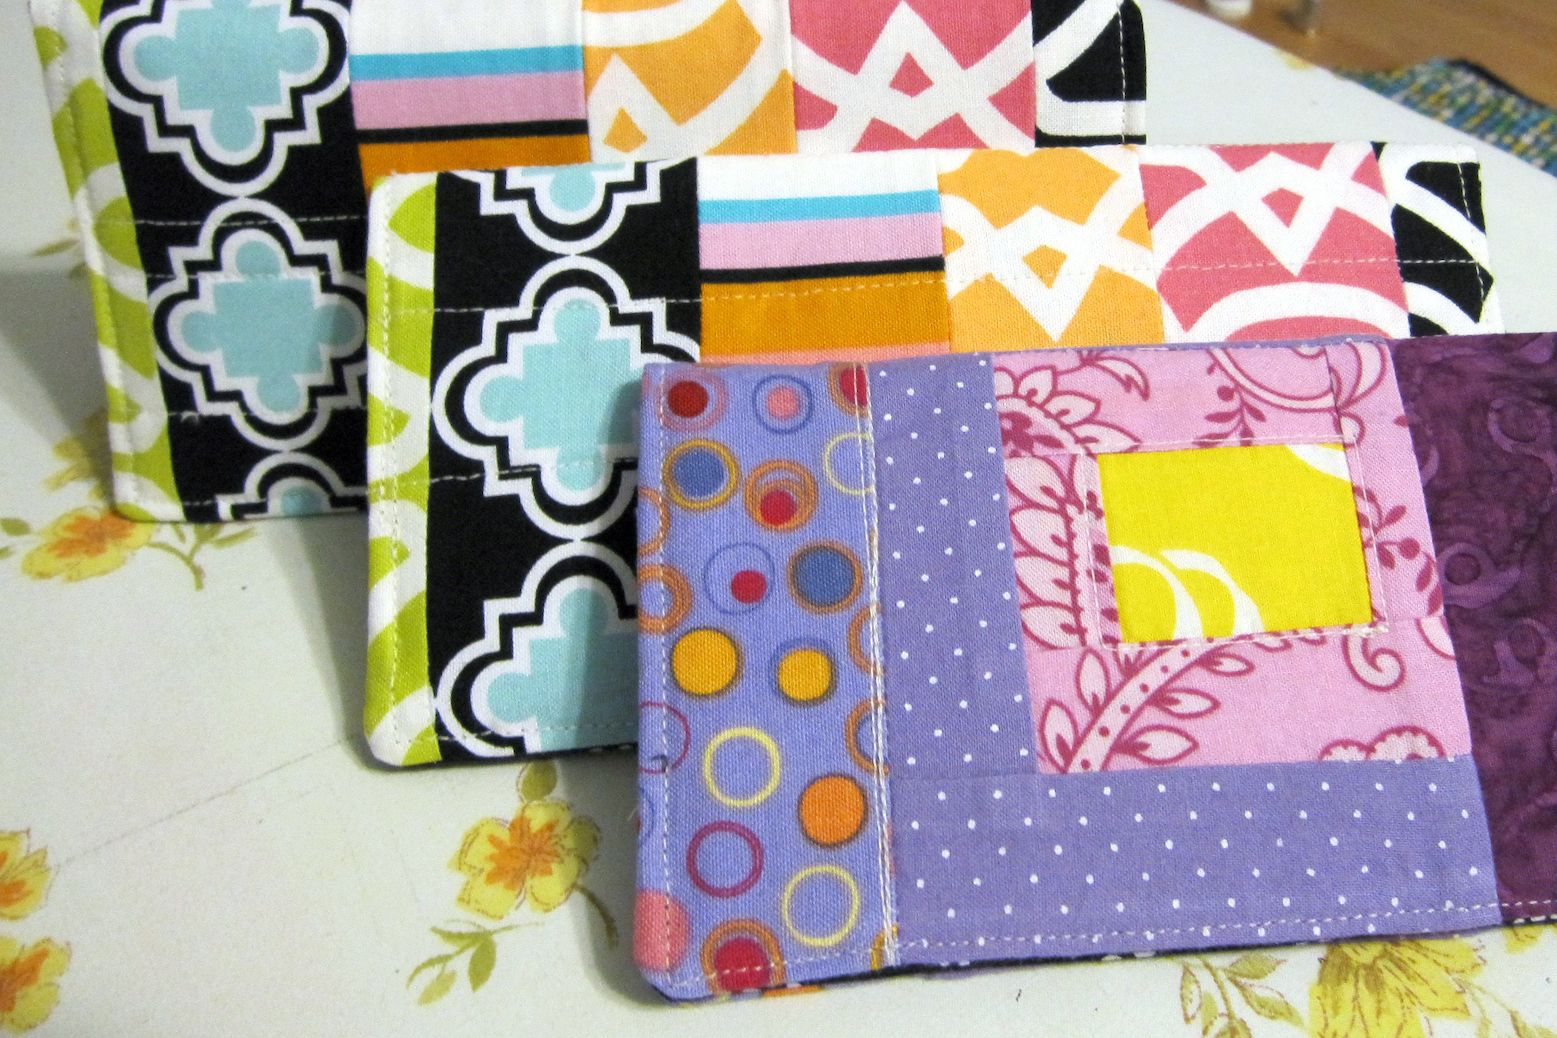 Fabric Cheque Book Cover : Fabric checkbook cover free sewing pattern